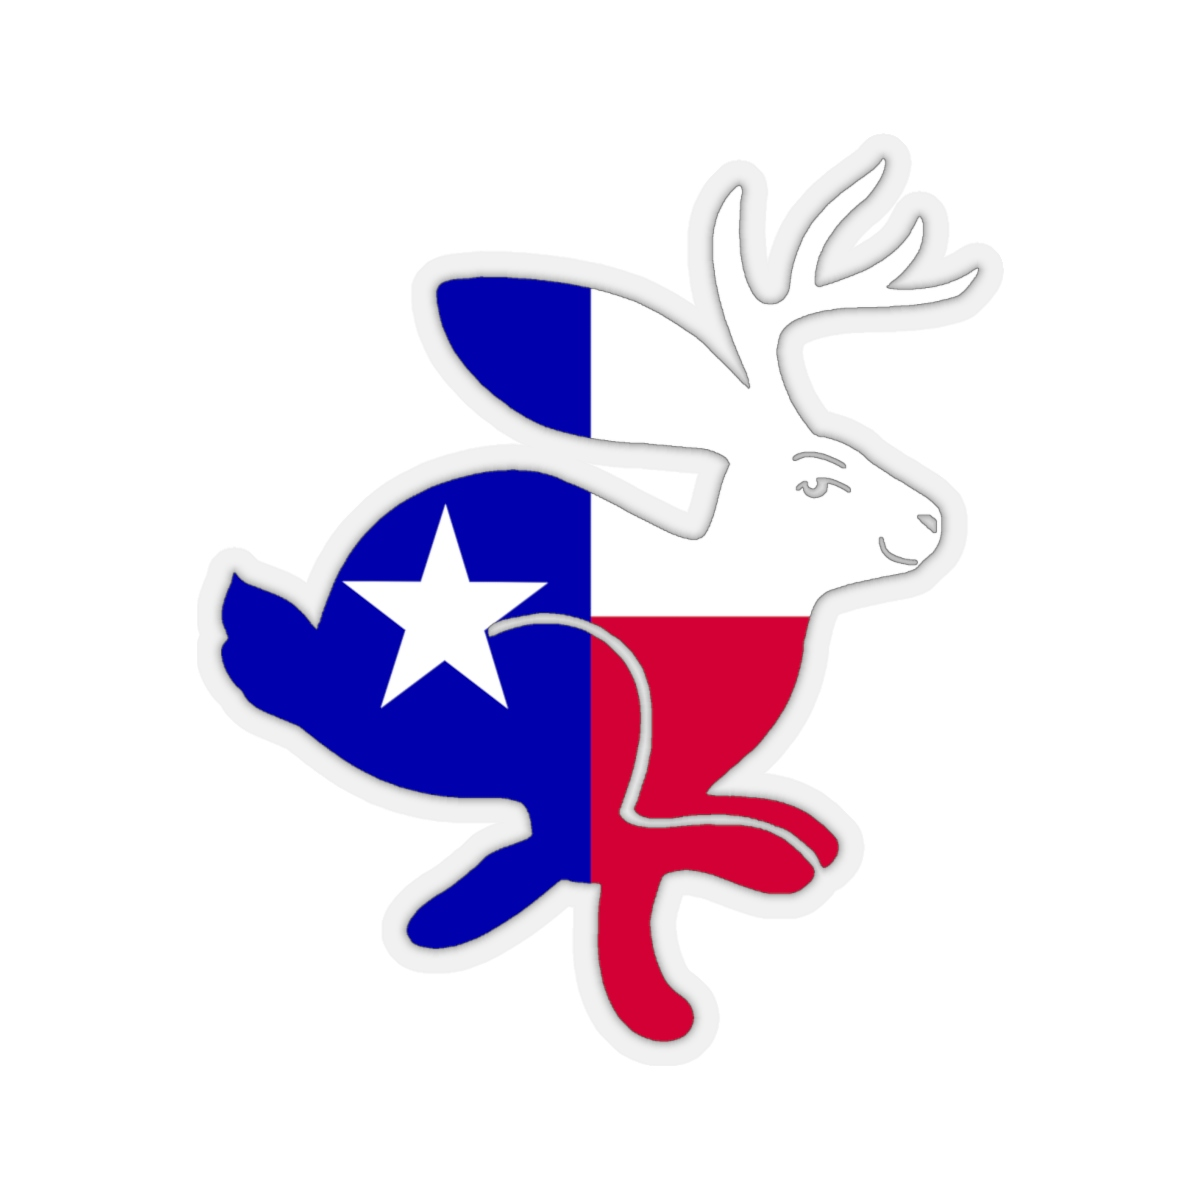 This Is So Texas: TX Jackalope Decal